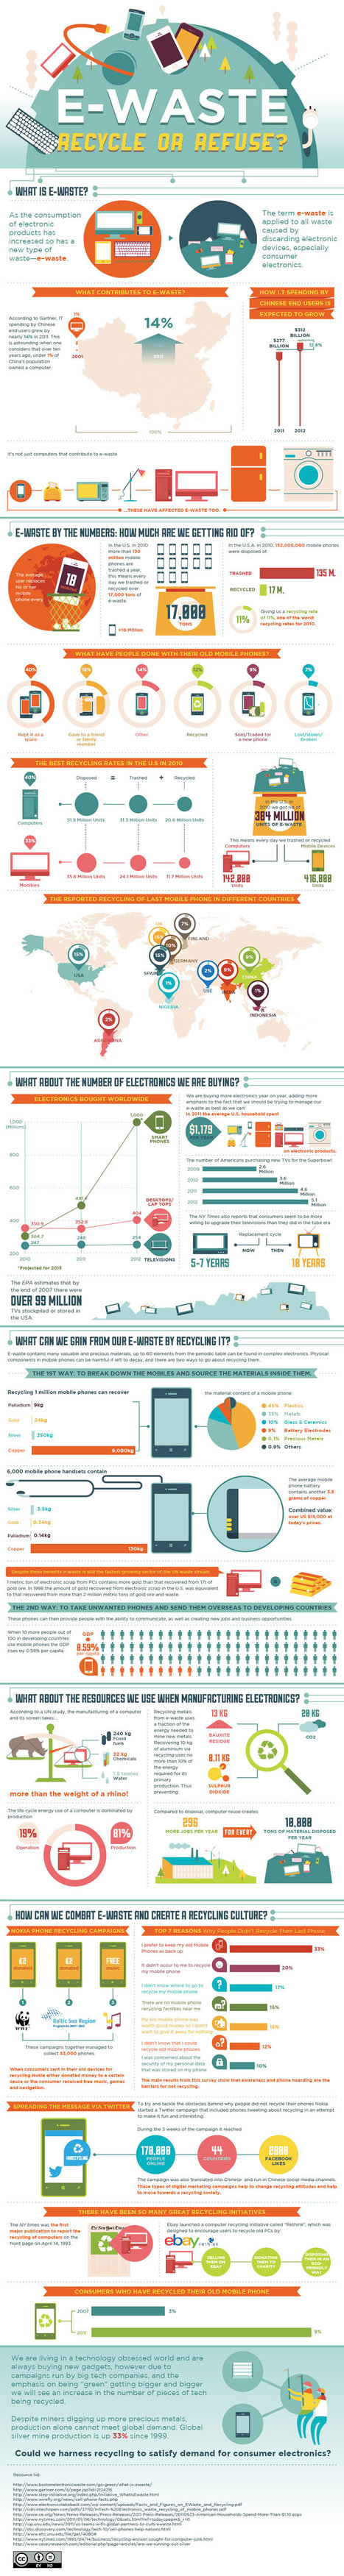 E-Waste by the Numbers: Infographic | WEBOLUTION! | Scoop.it